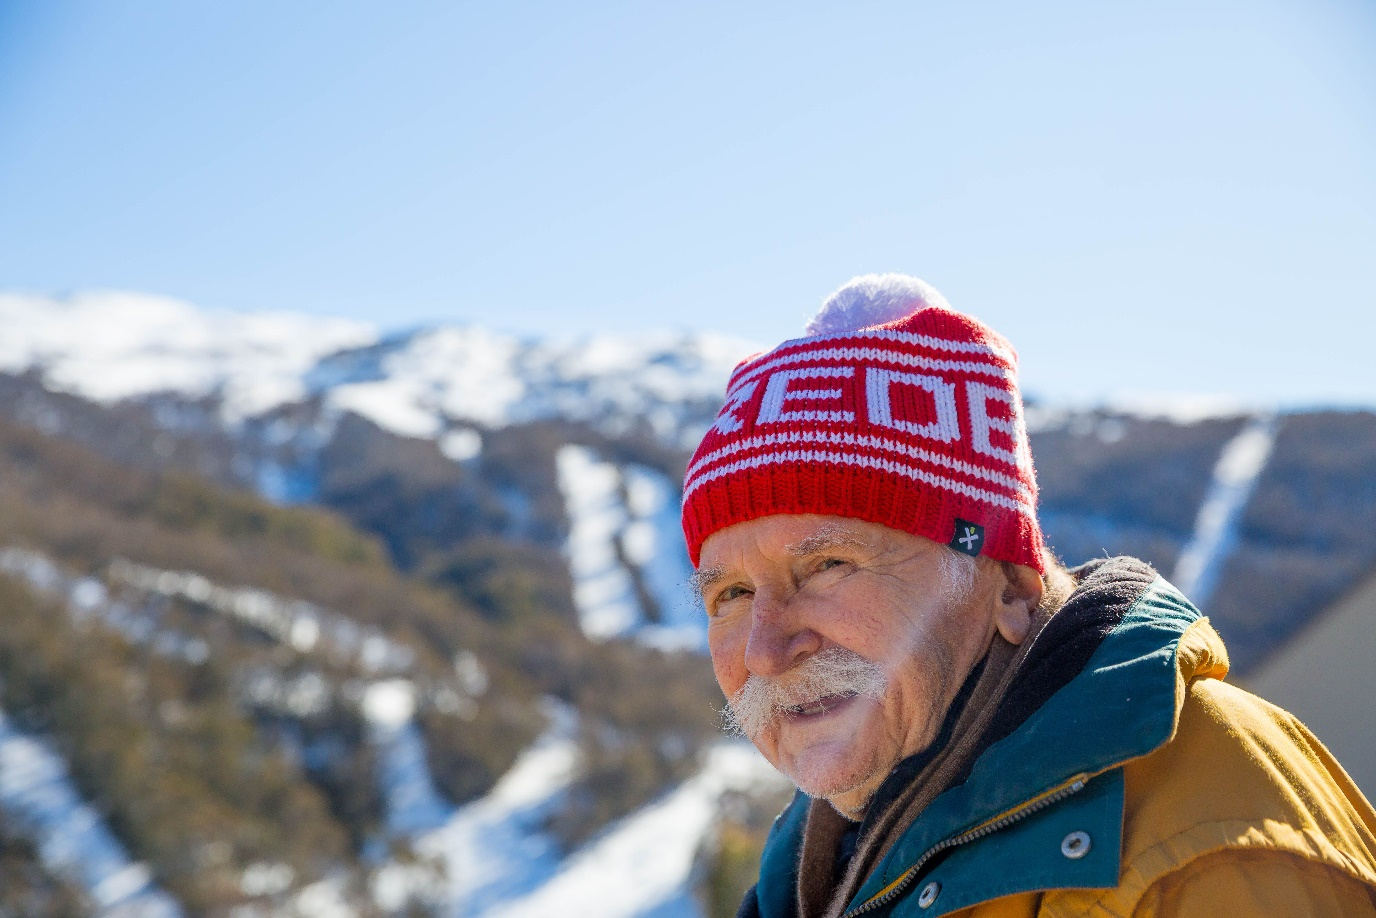 A close up photo of an elderly man wearing a red beanie smiling on a snowy mountain